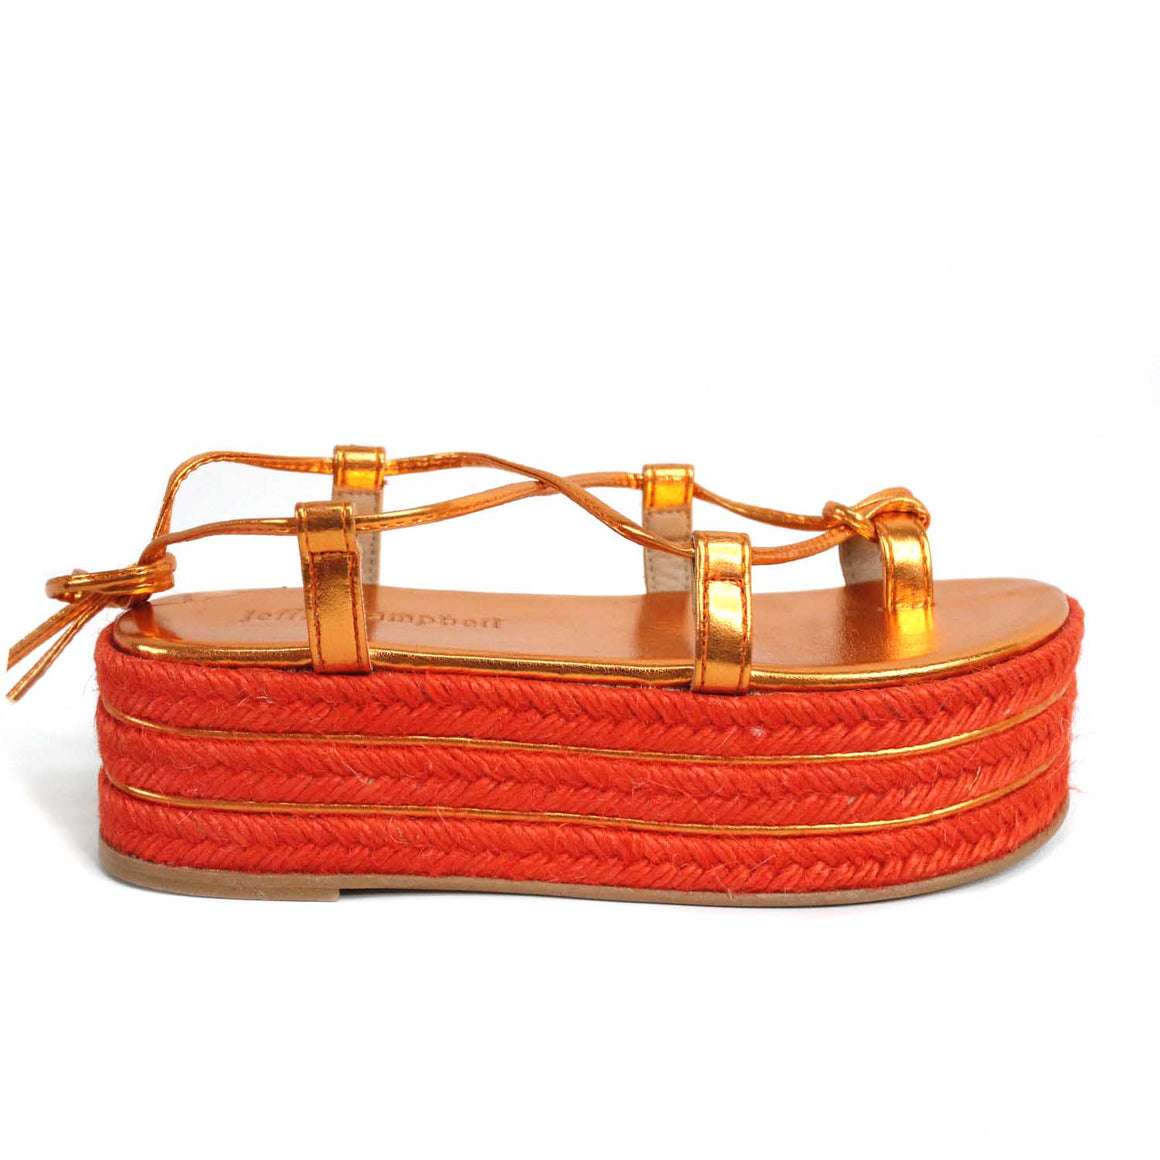 JEFFREY CAMPEBLL NAPA LAME ORANGE LACE UP SANDALS